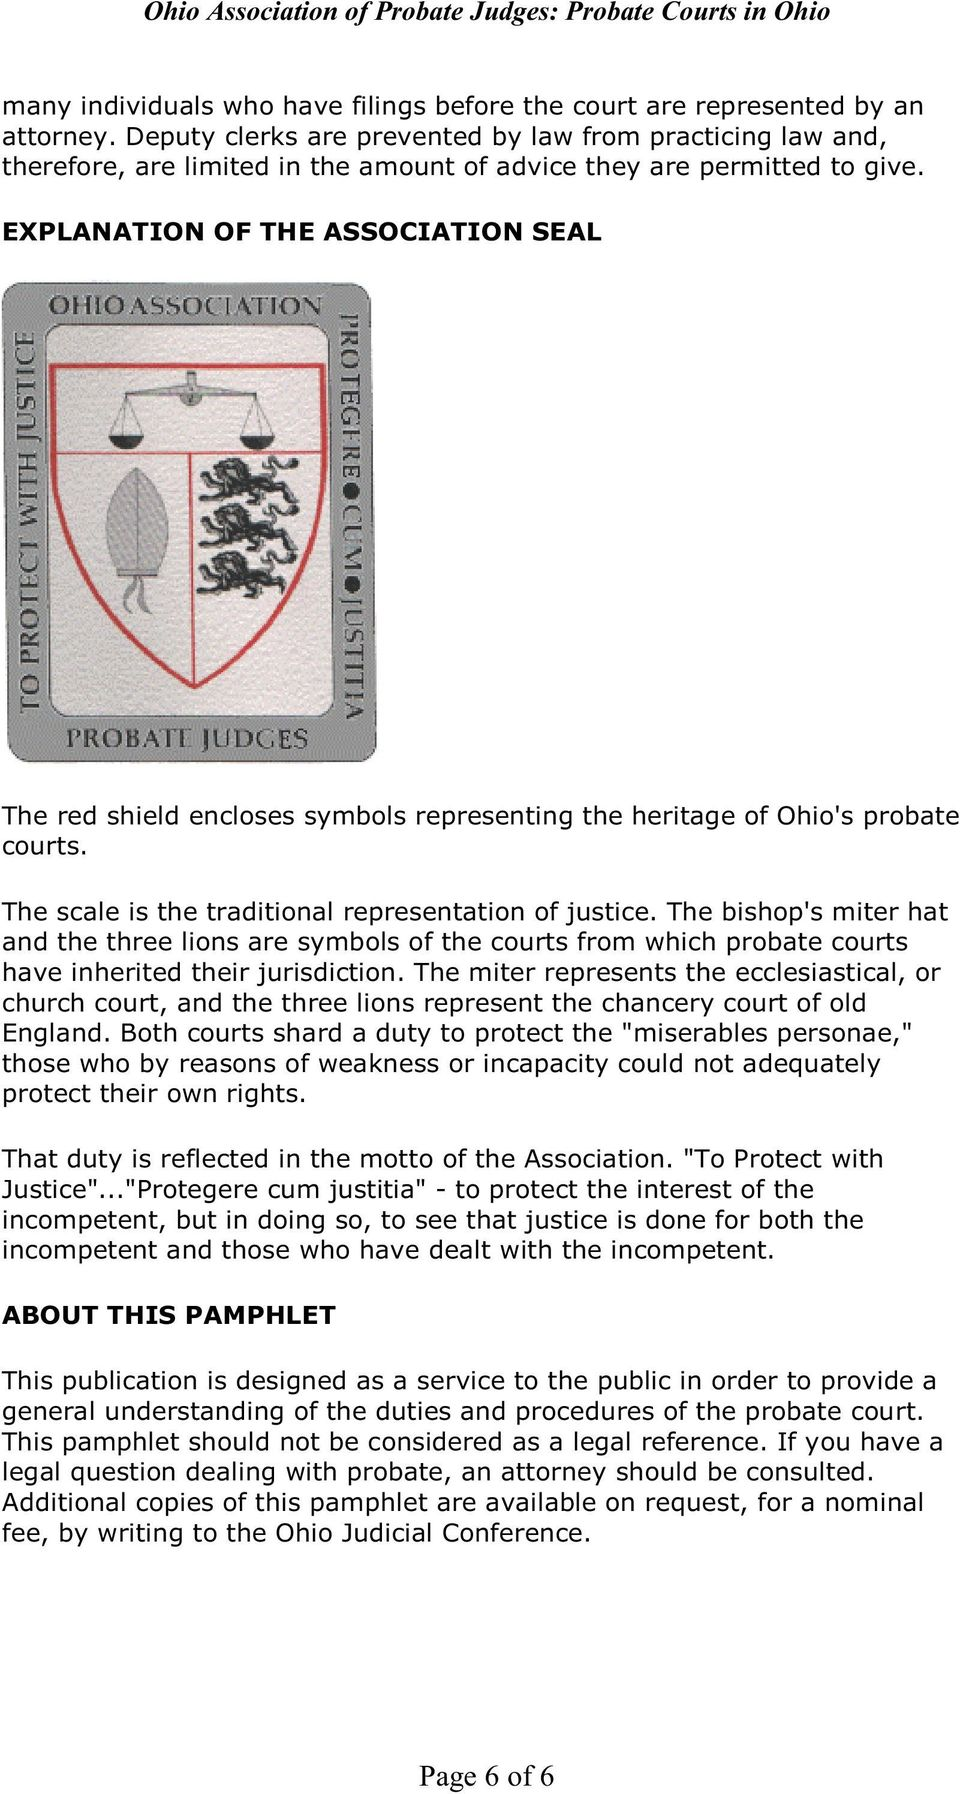 EXPLANATION OF THE ASSOCIATION SEAL The red shield encloses symbols representing the heritage of Ohio's probate courts. The scale is the traditional representation of justice.